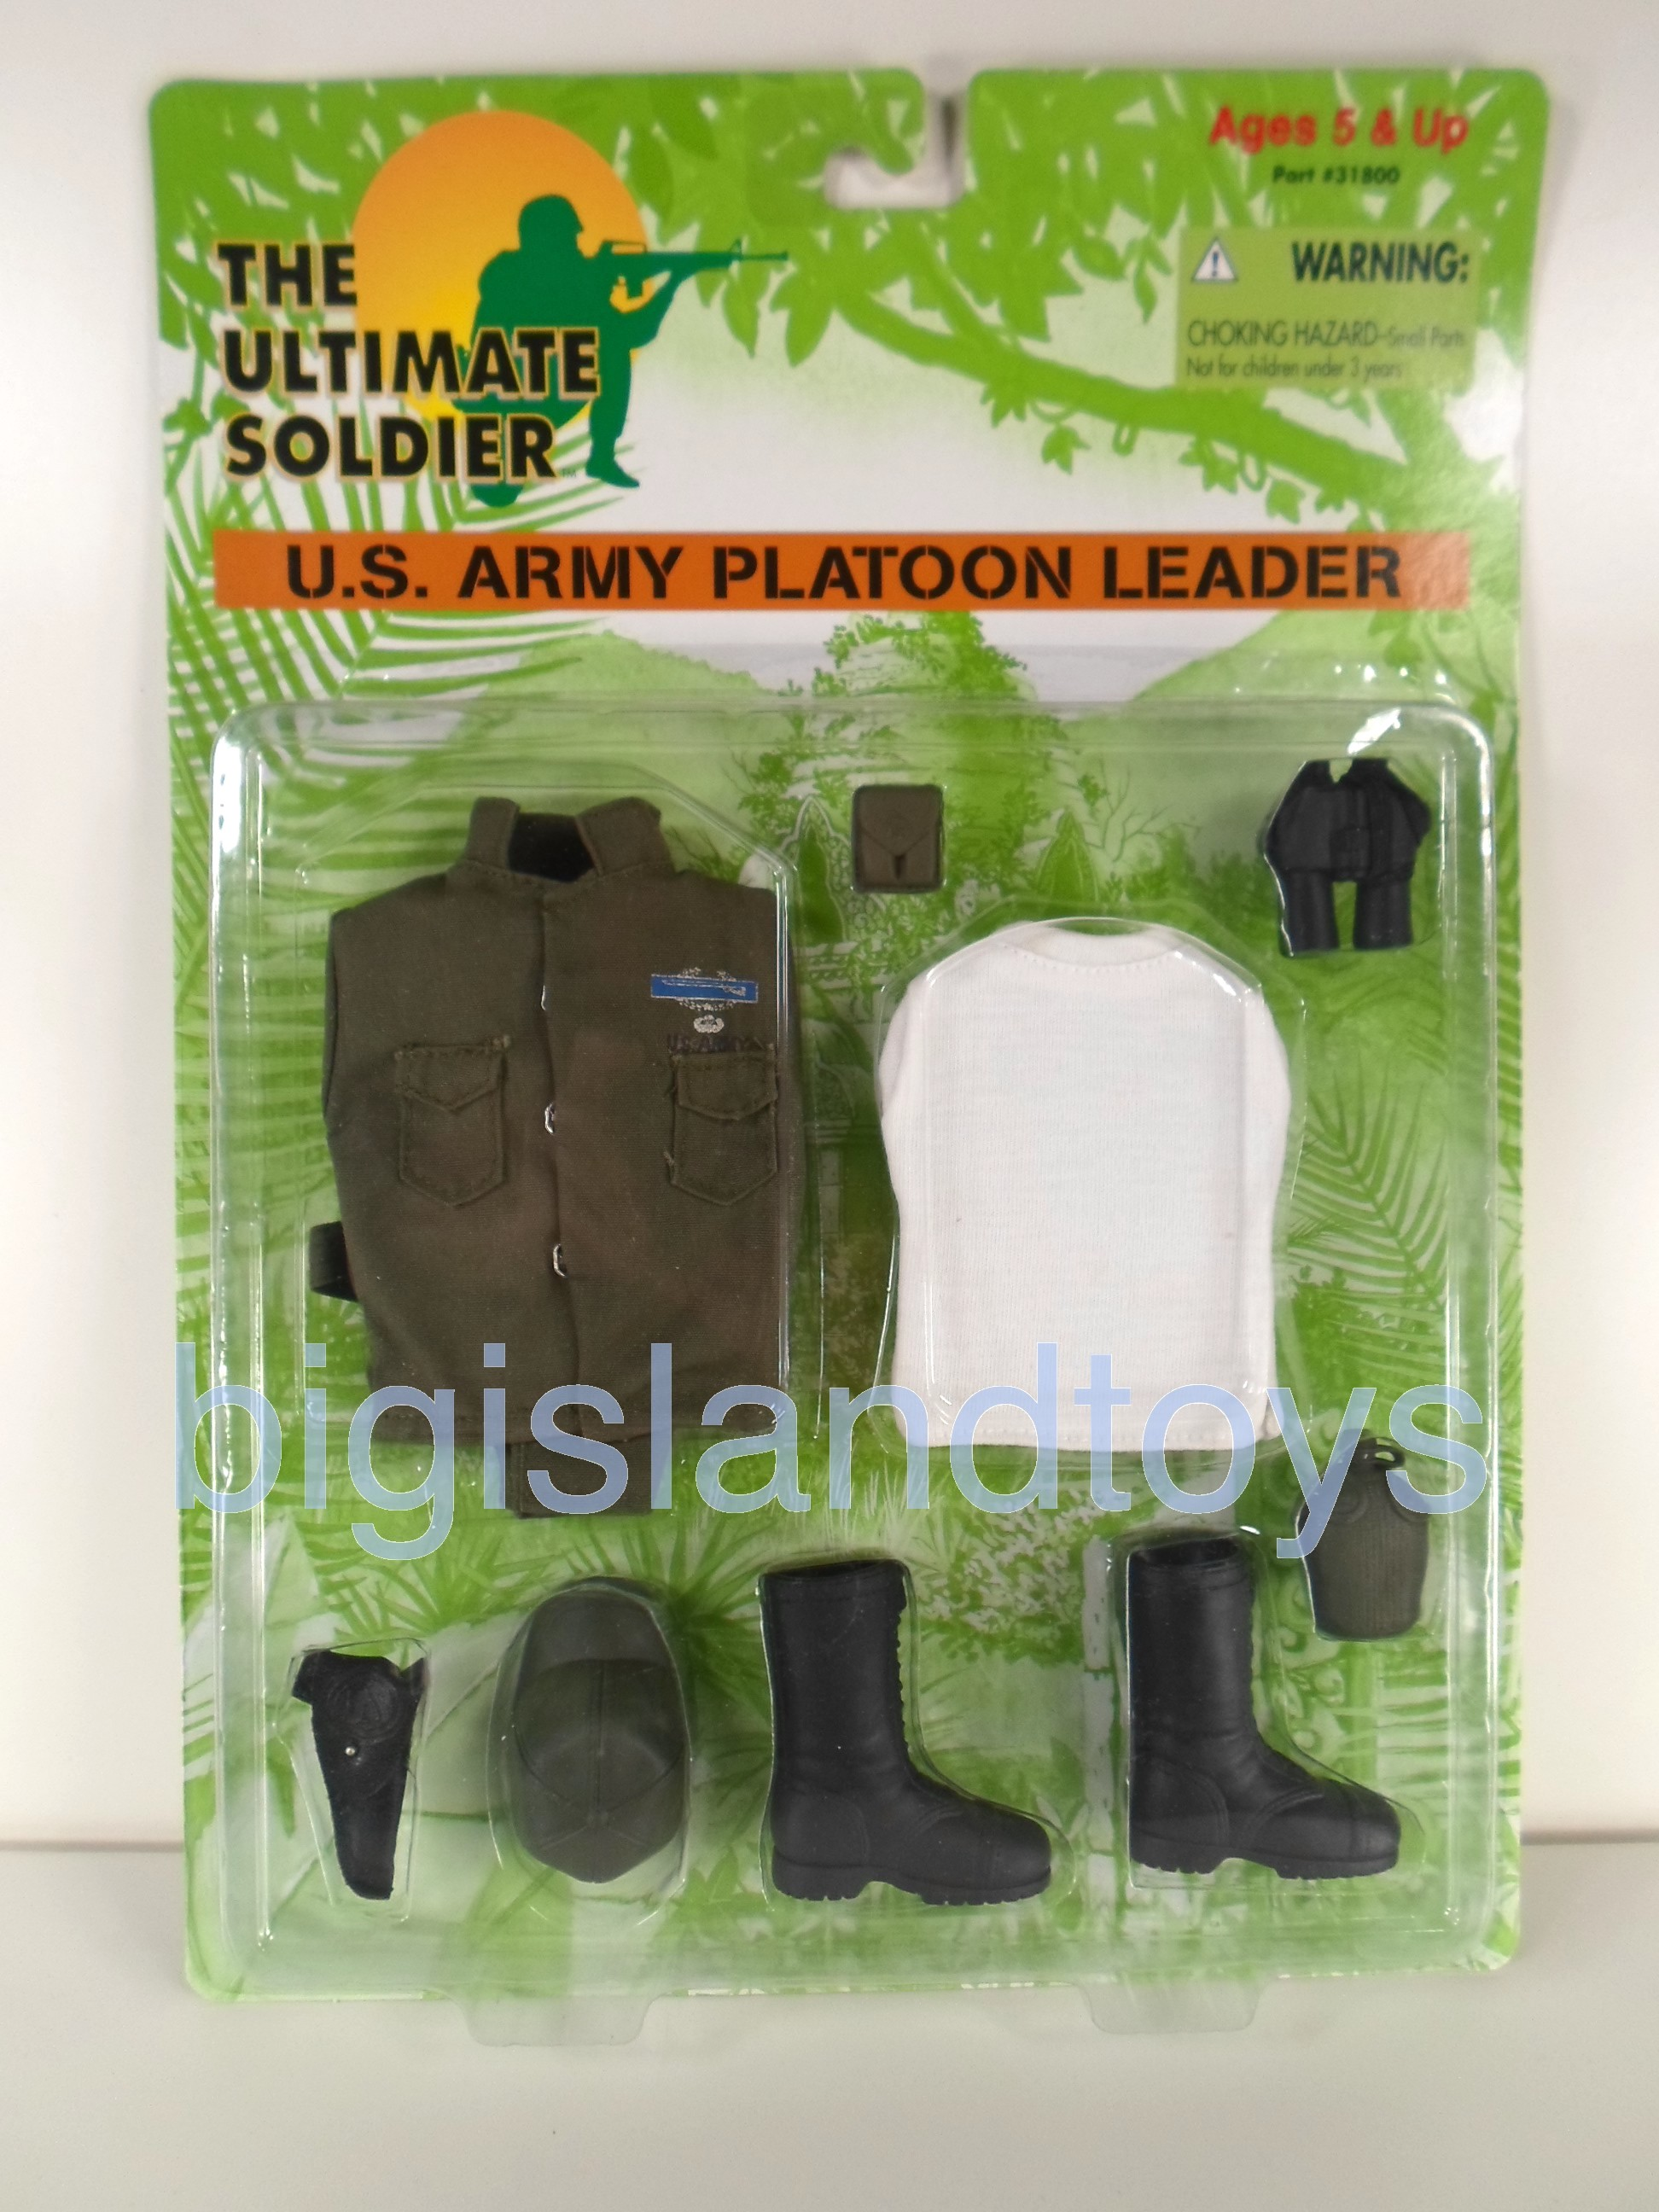 The Ultimate Soldier     U.S. Army Platoon Leader